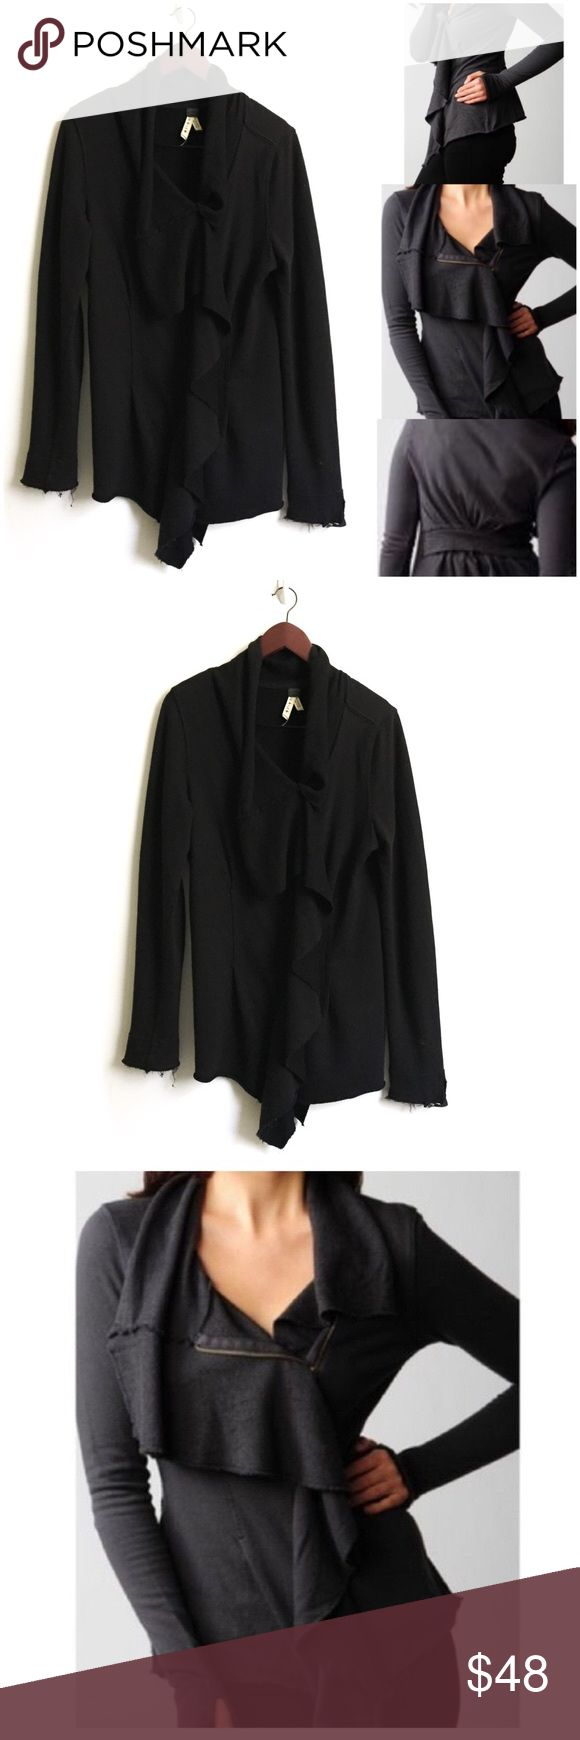 """Free People Jacket *Ruffle trim at the fold-over collar and at the off-center, two-way zip closure. Extended front hem and pleated waist. Unfinished edges. * 24"""" long, measured from center back. * Fabrication: French terry. * 100% cotton. * Good Preowned Condition. Free People Jackets & Coats"""